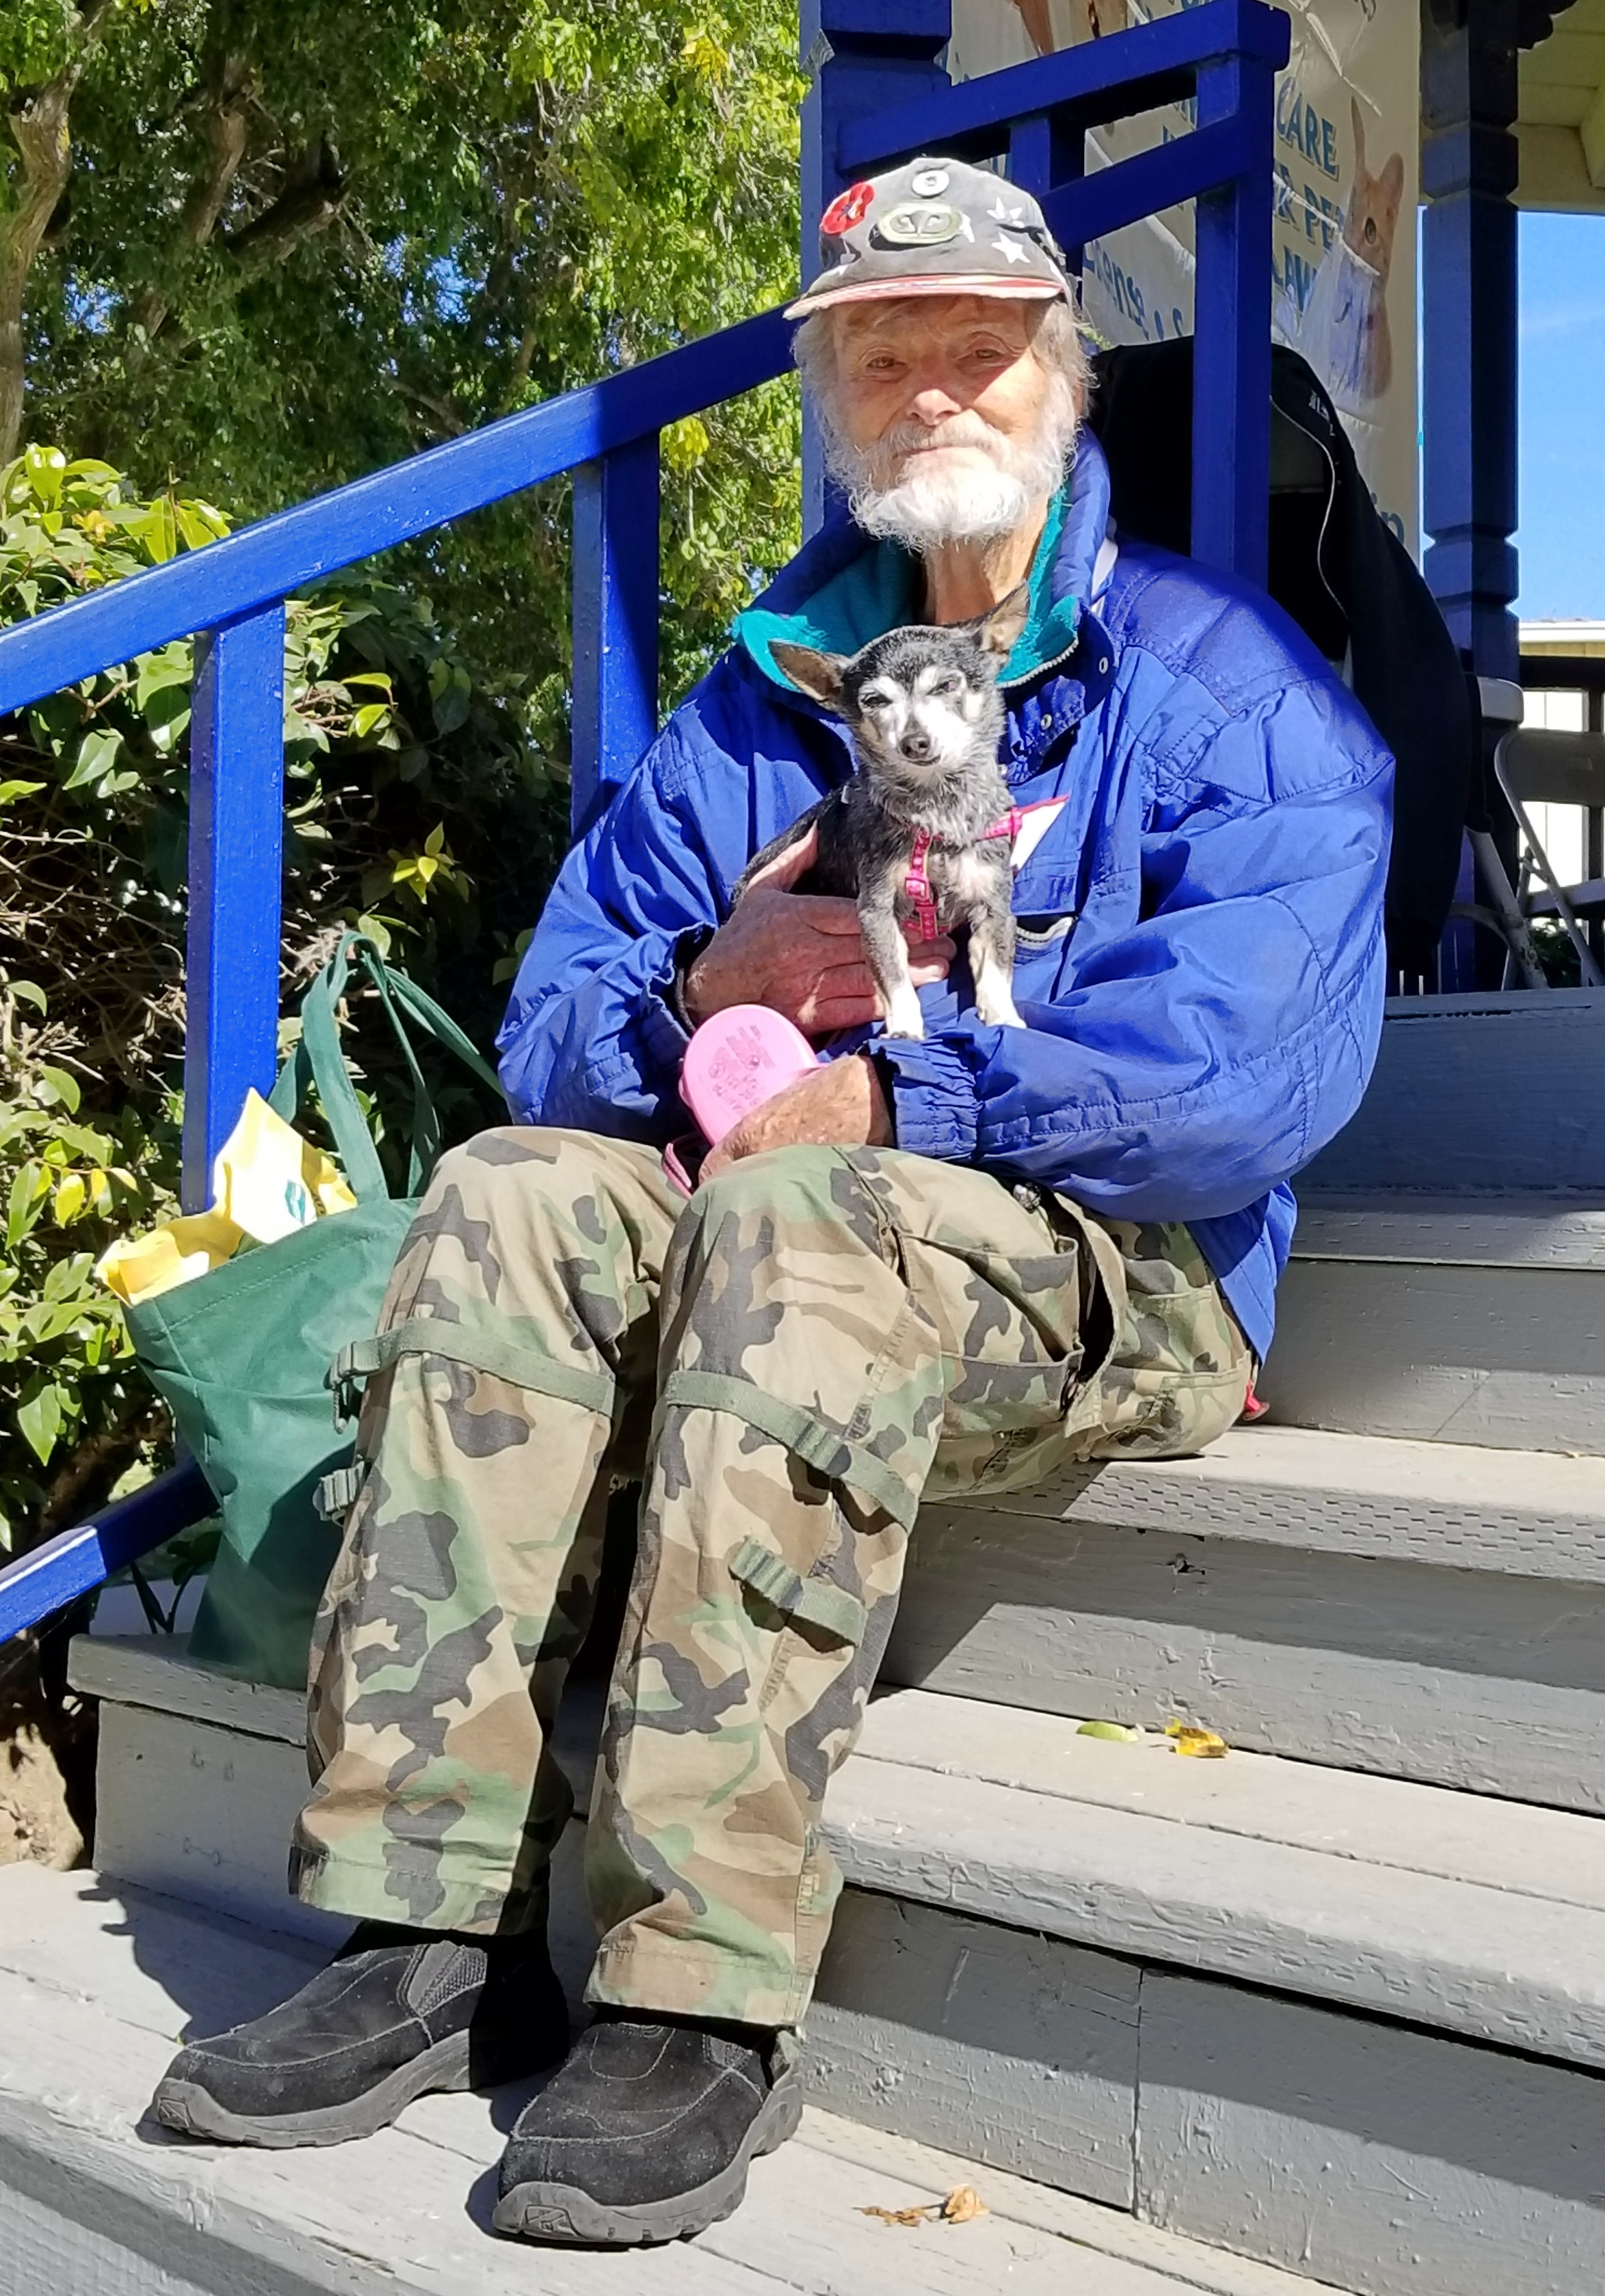 Lompoc resident and Vietnam War veteran Ron Herbib sits in the sun with his 12-year Chihuahua, Juanita Chiquita Margarita, after the pooch received a free grooming during Saturday's Santa Barbara County Stand Down.